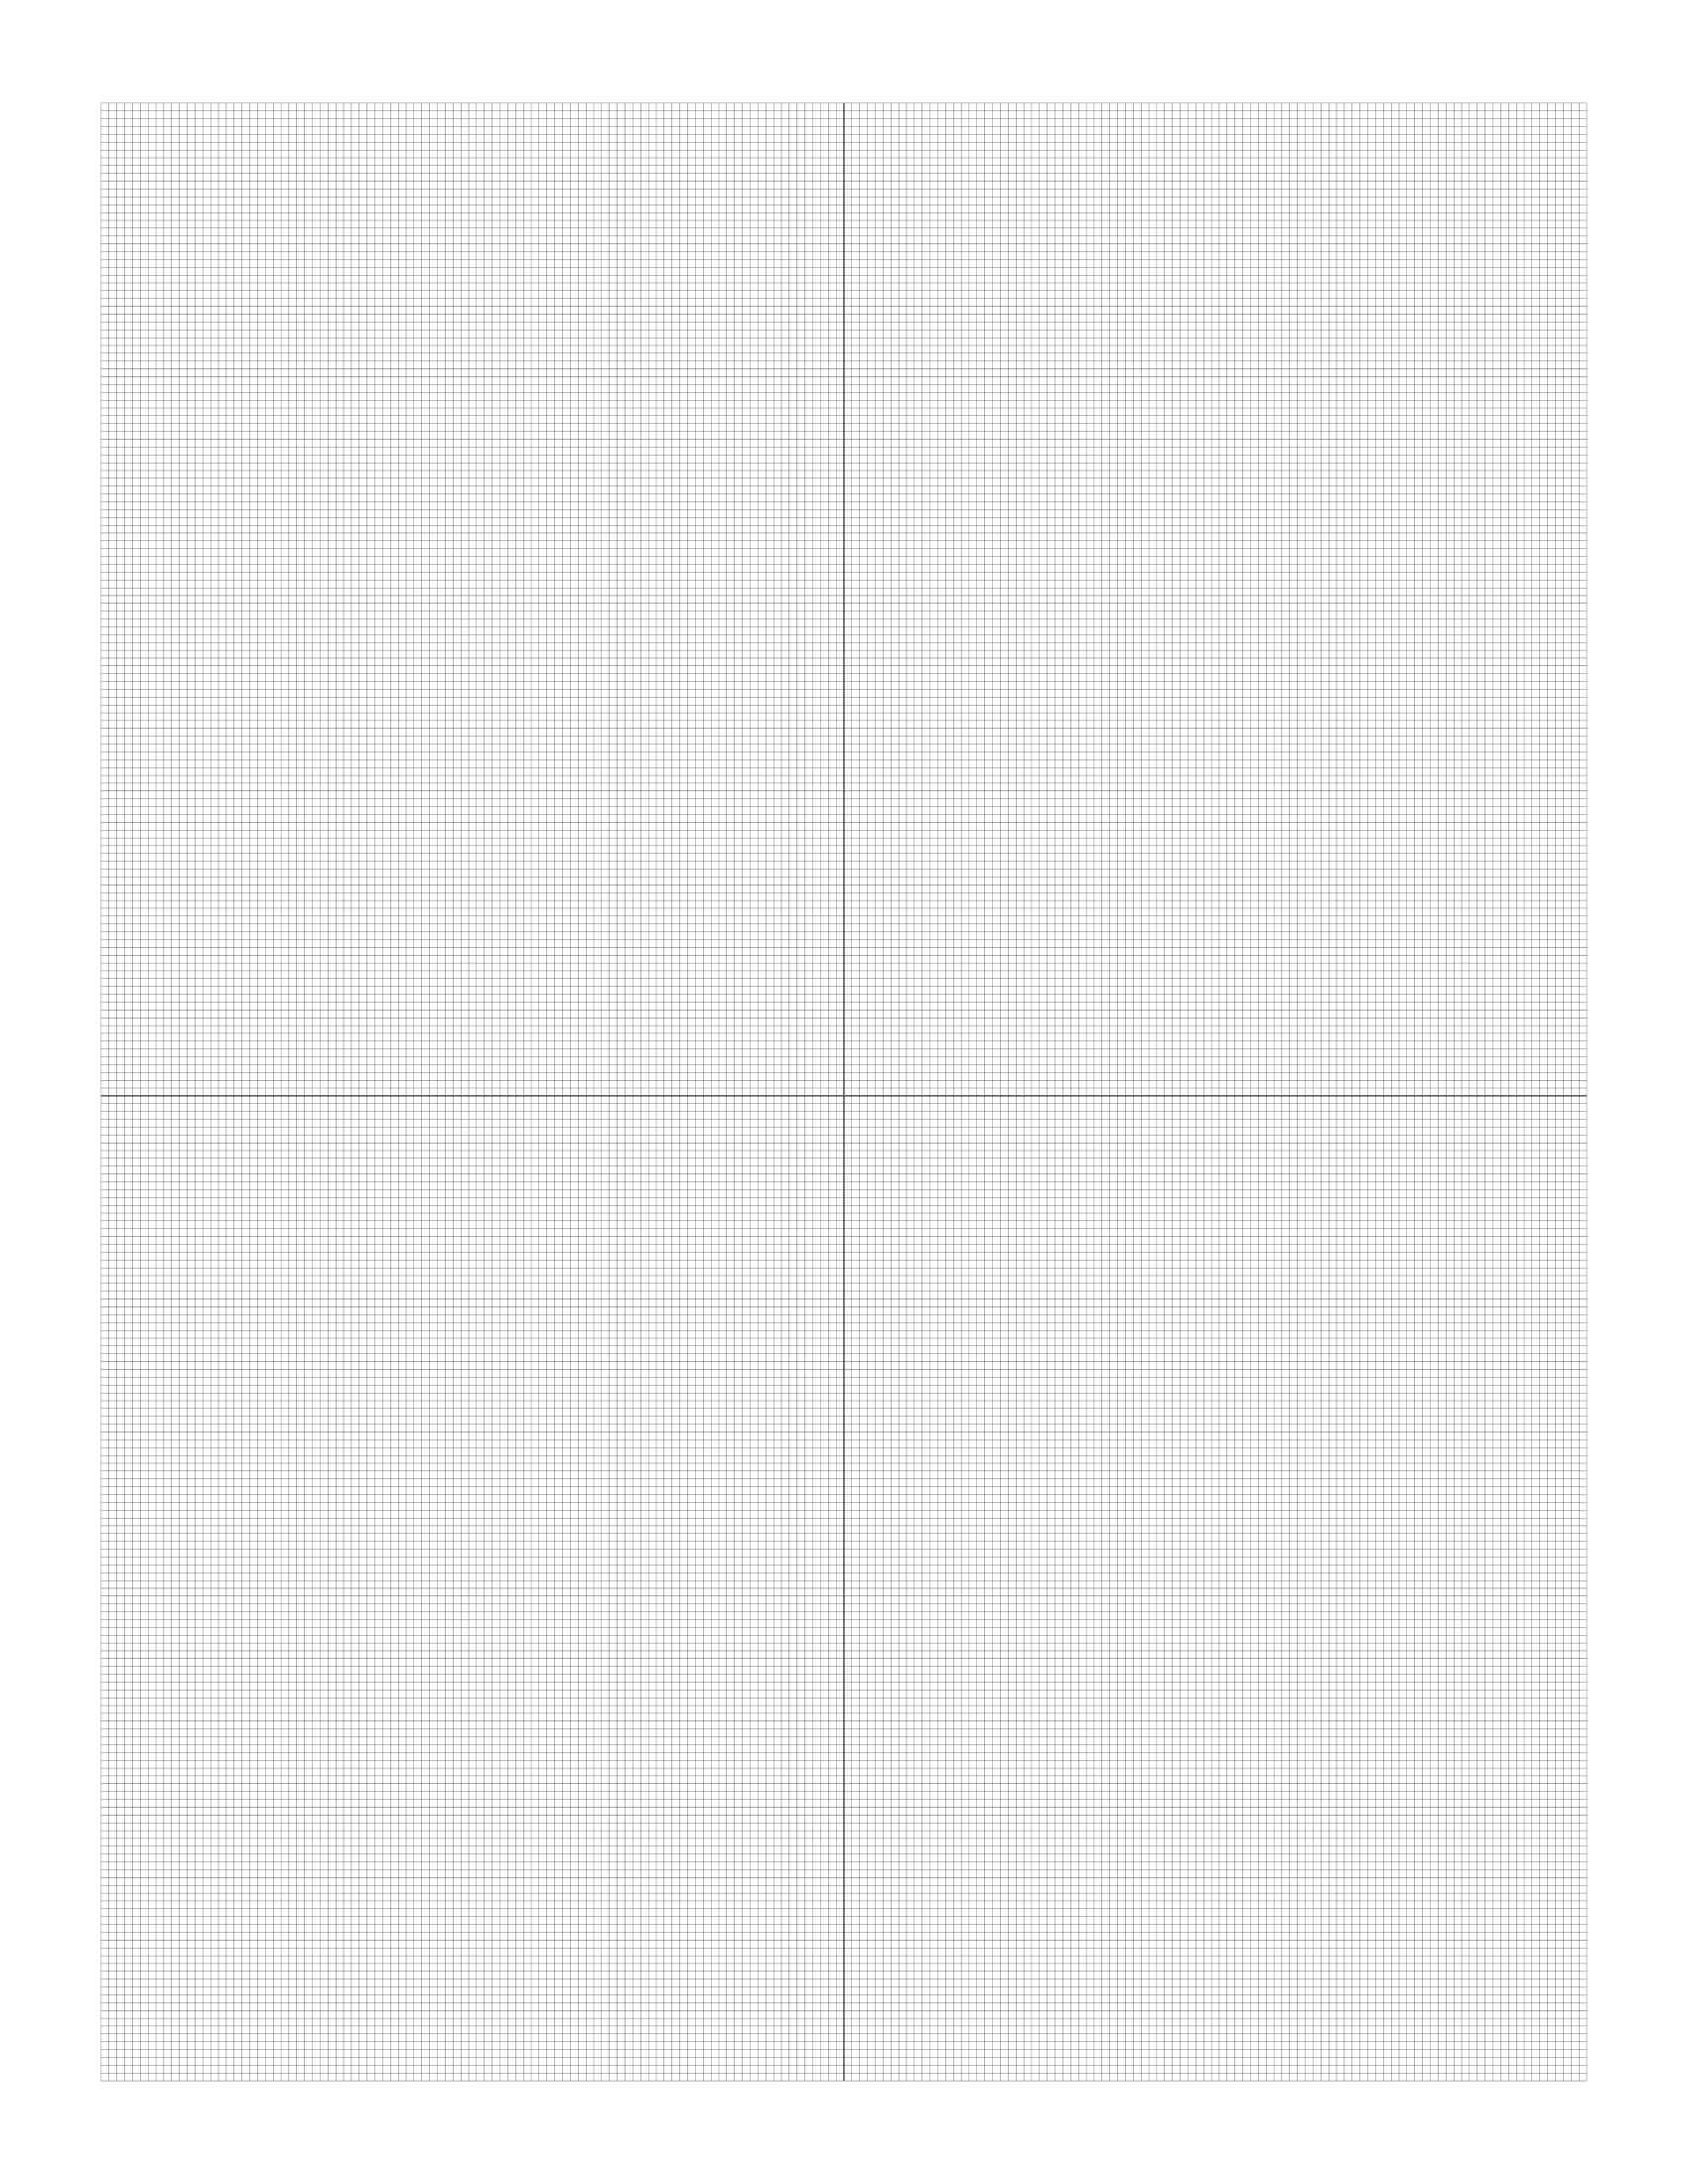 graphic about 1 Cm Graph Paper Printable identified as Absolutely free On line Graph Paper / Undeniable